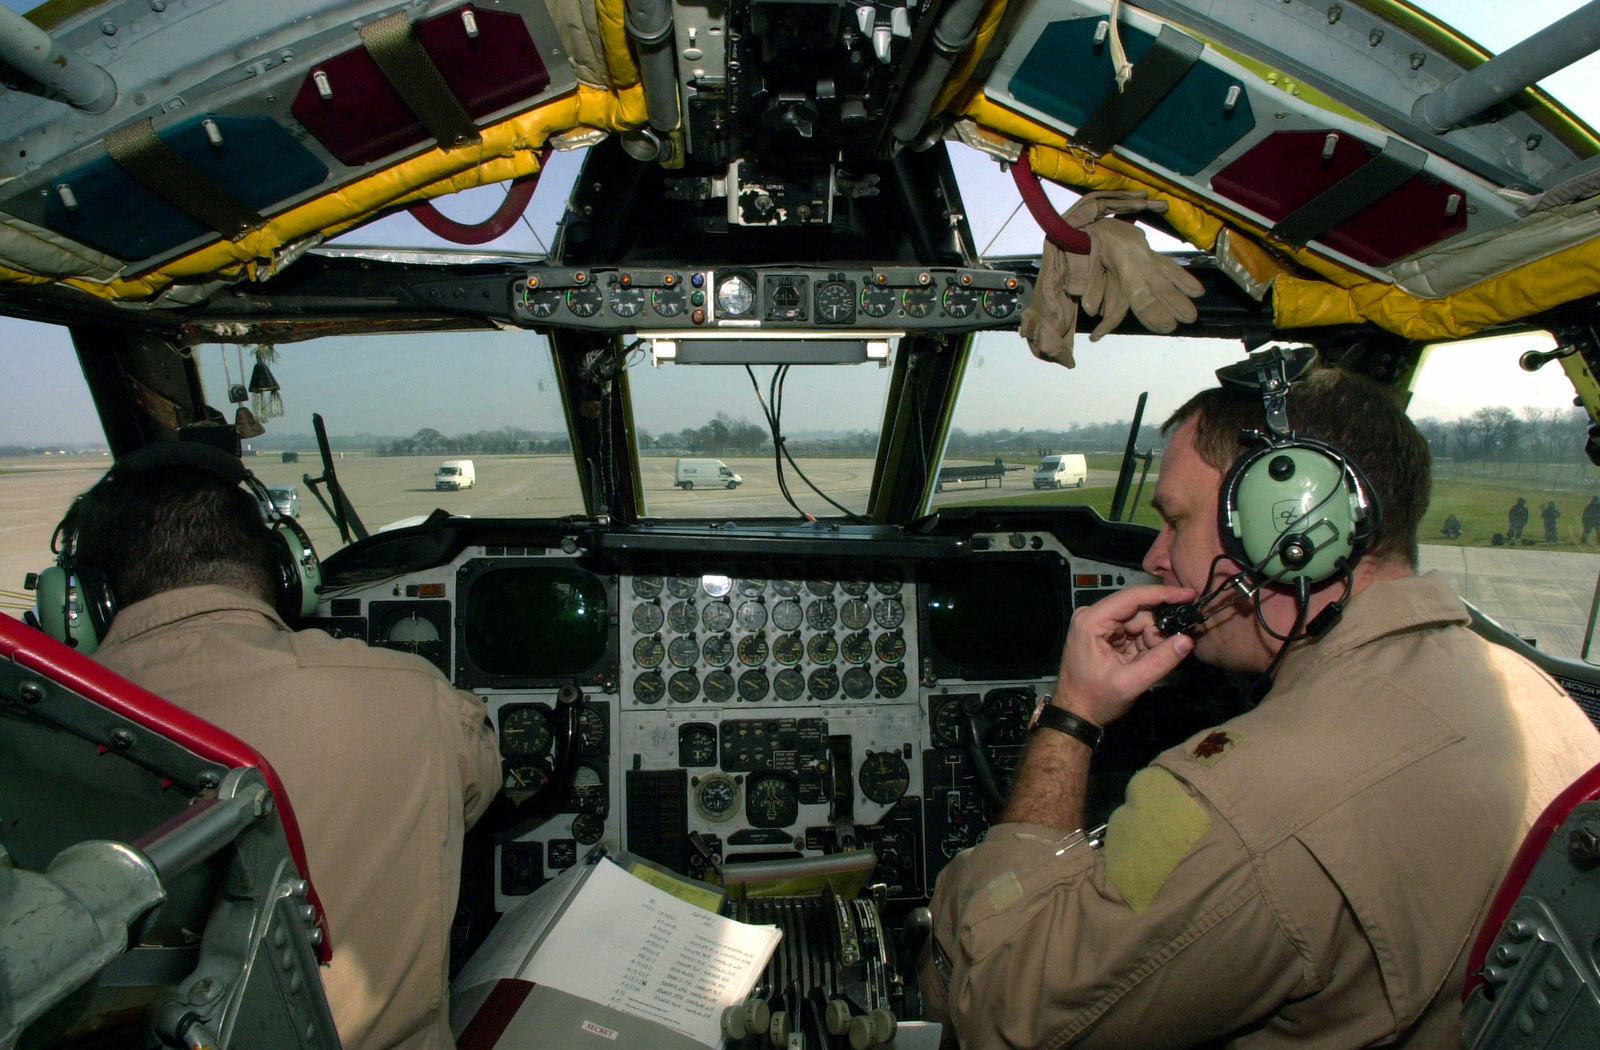 Inside the US Air Force (USAF) B-52H Stratofortress bomber, USAF Major (MAJ) Jeffrey (left), Aircraft Commander, and USAF MAJ Gregory, Pilot, 23rd Expeditionary Bomb Squadron (EBS), Minot Air Force Base (AFB), North Dakota (ND), perform final pre-flight checks prior to a mission against Iraqi targets, during Operation IRAQI FREEDOM